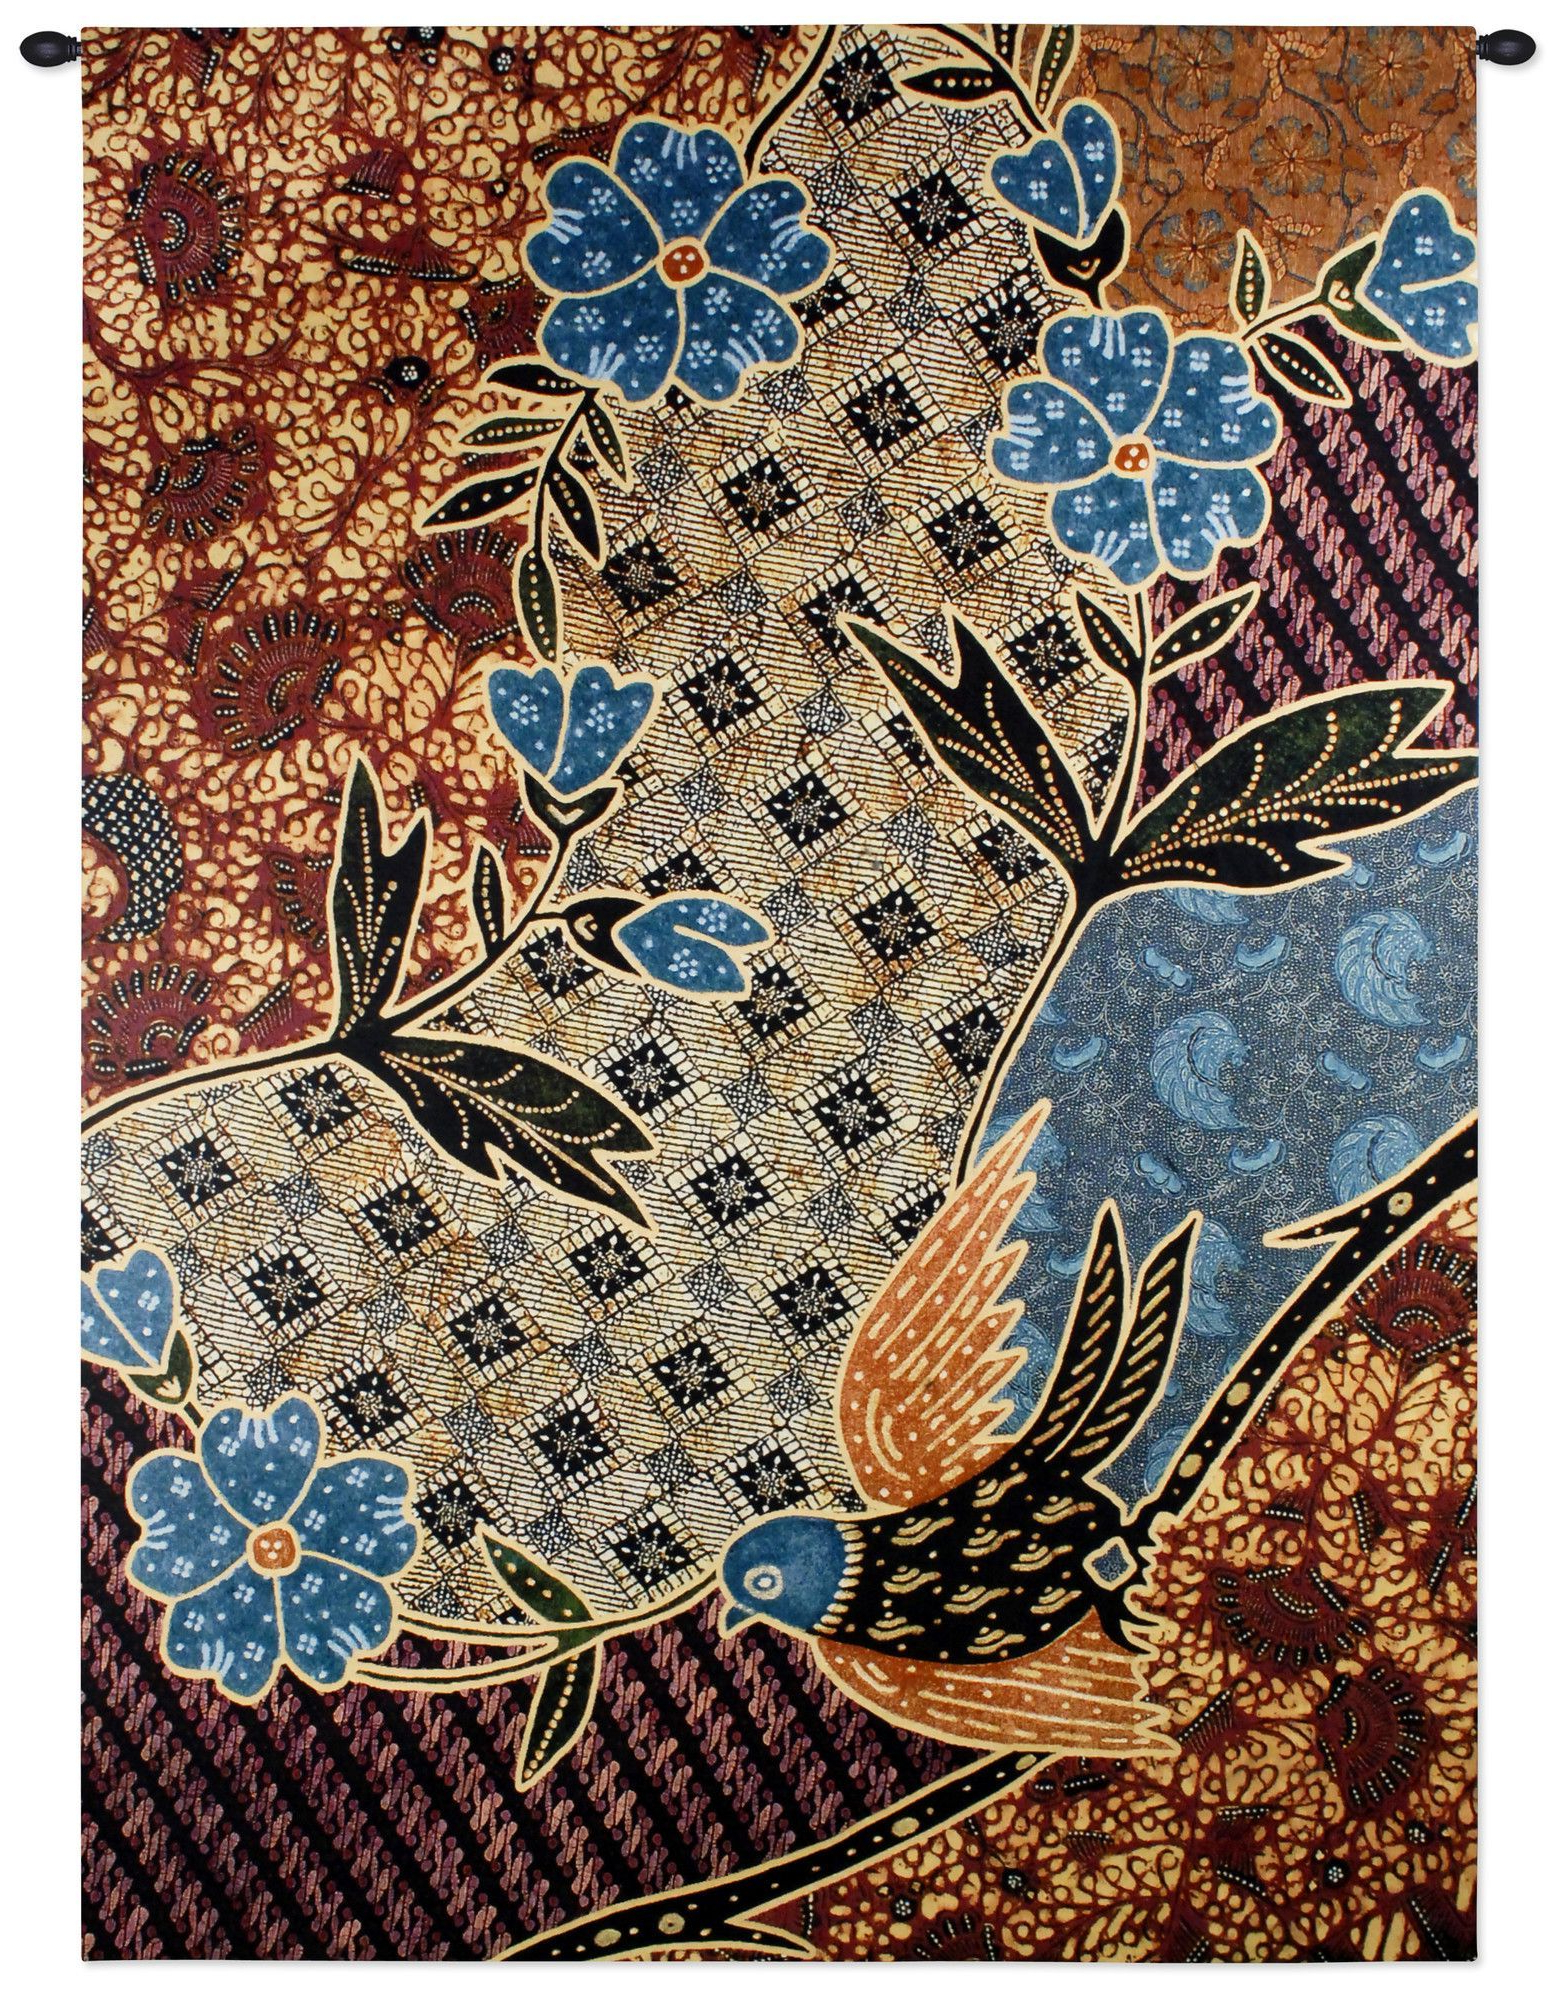 Seni Tradisional For Latest Blended Fabric In His Tapestries And Wall Hangings (View 14 of 20)